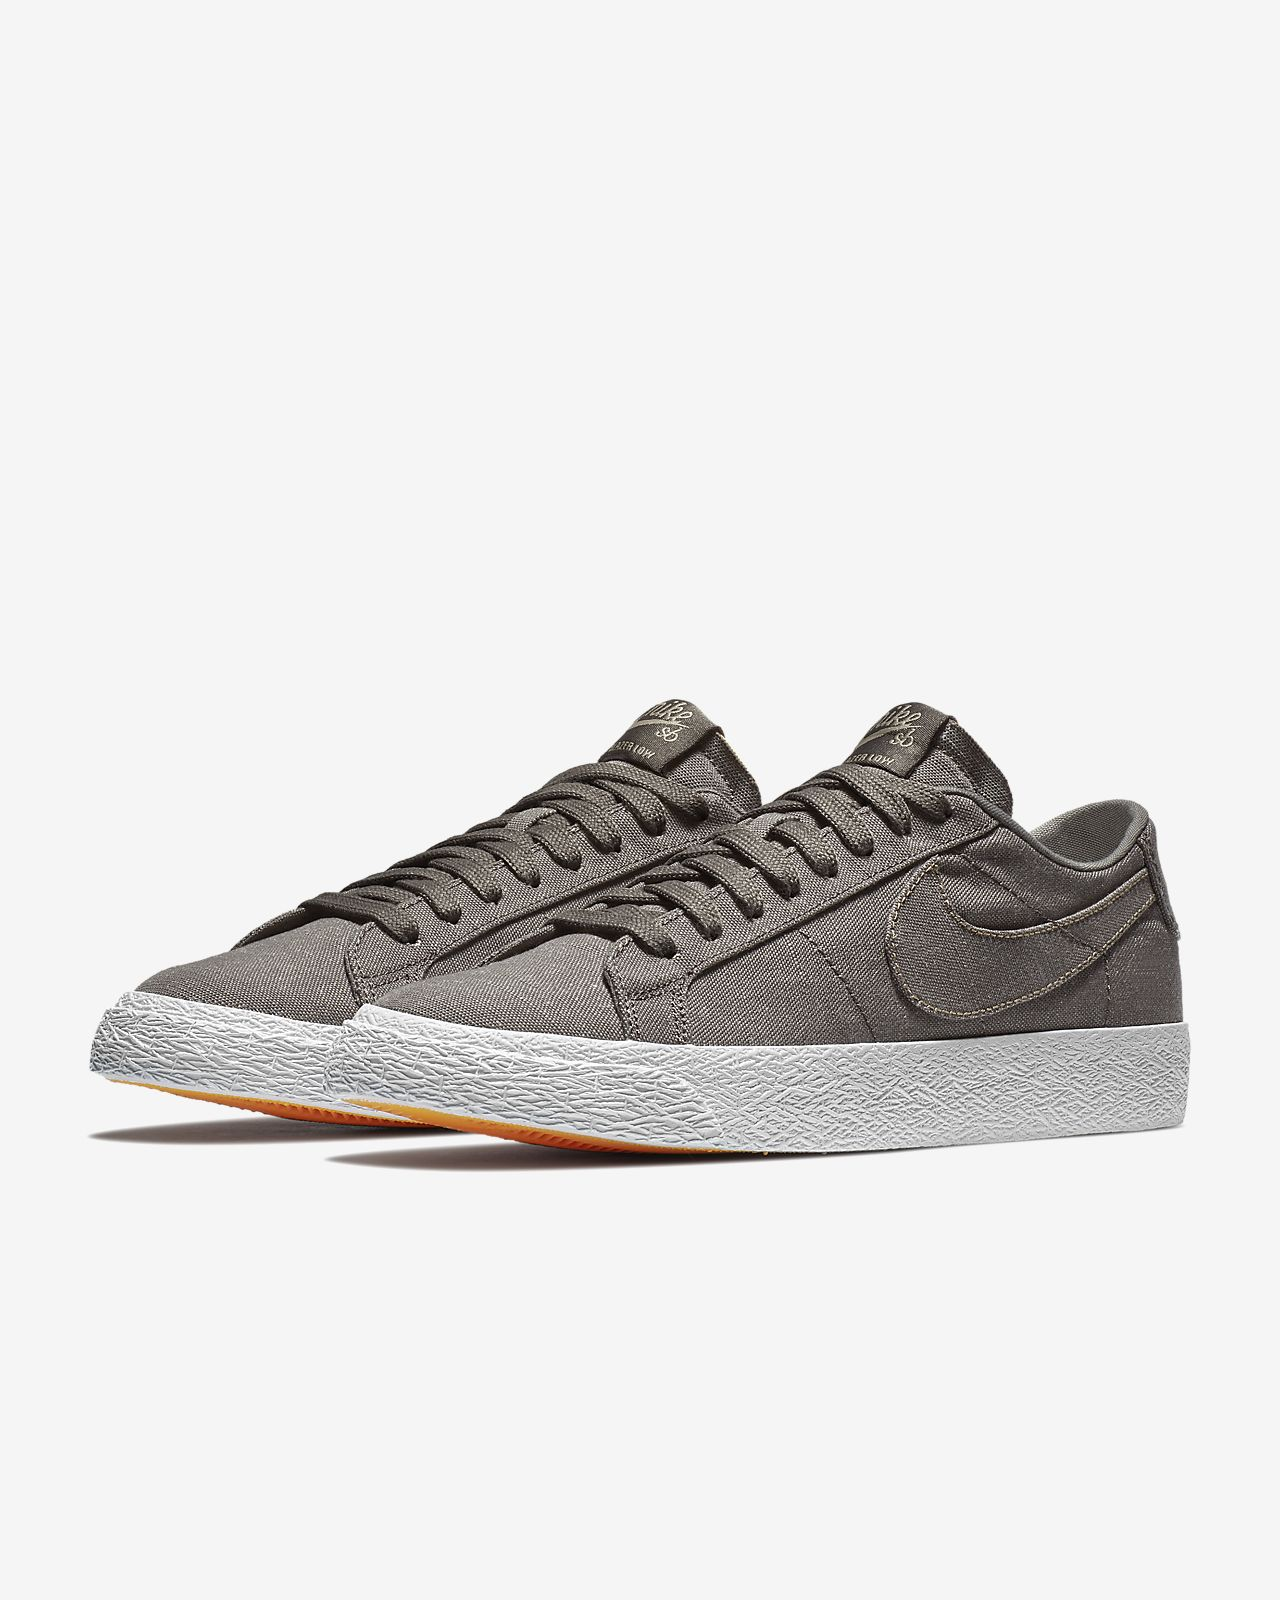 Nike SB Zoom Blazer Low Canvas Deconstructed Chaussure - ridgerock khaki 8c100b9a6